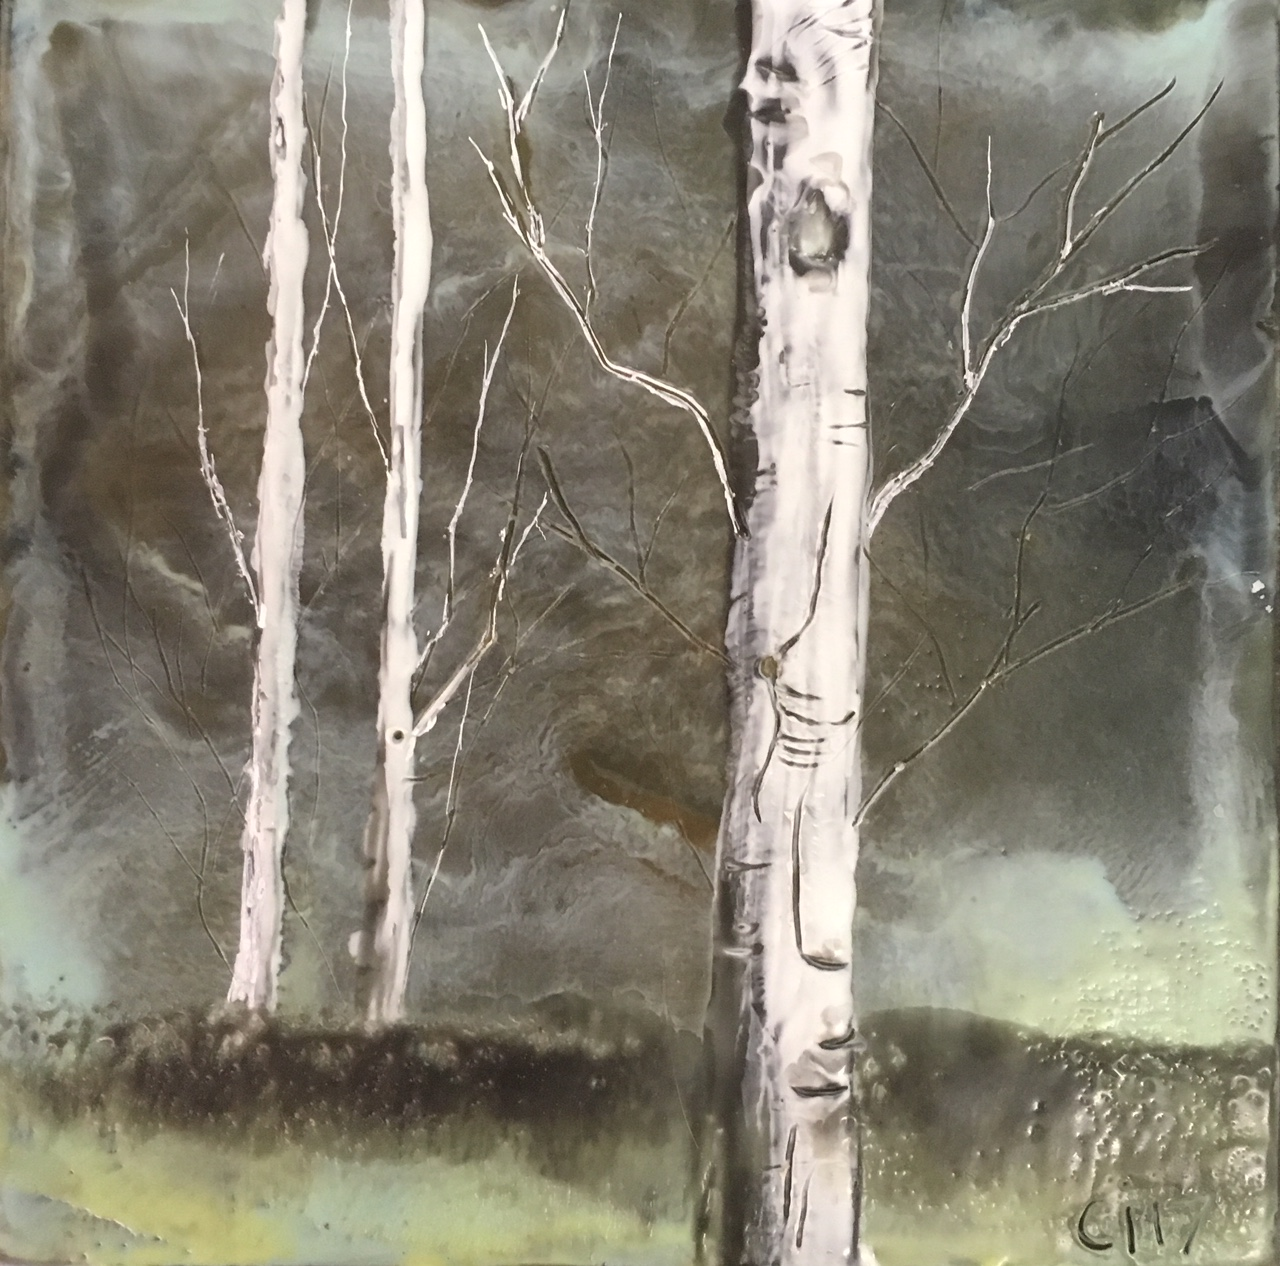 """""""Storm's Comin'""""   4x4"""" unframed  encaustic mixed media on board  DONATED  2017"""